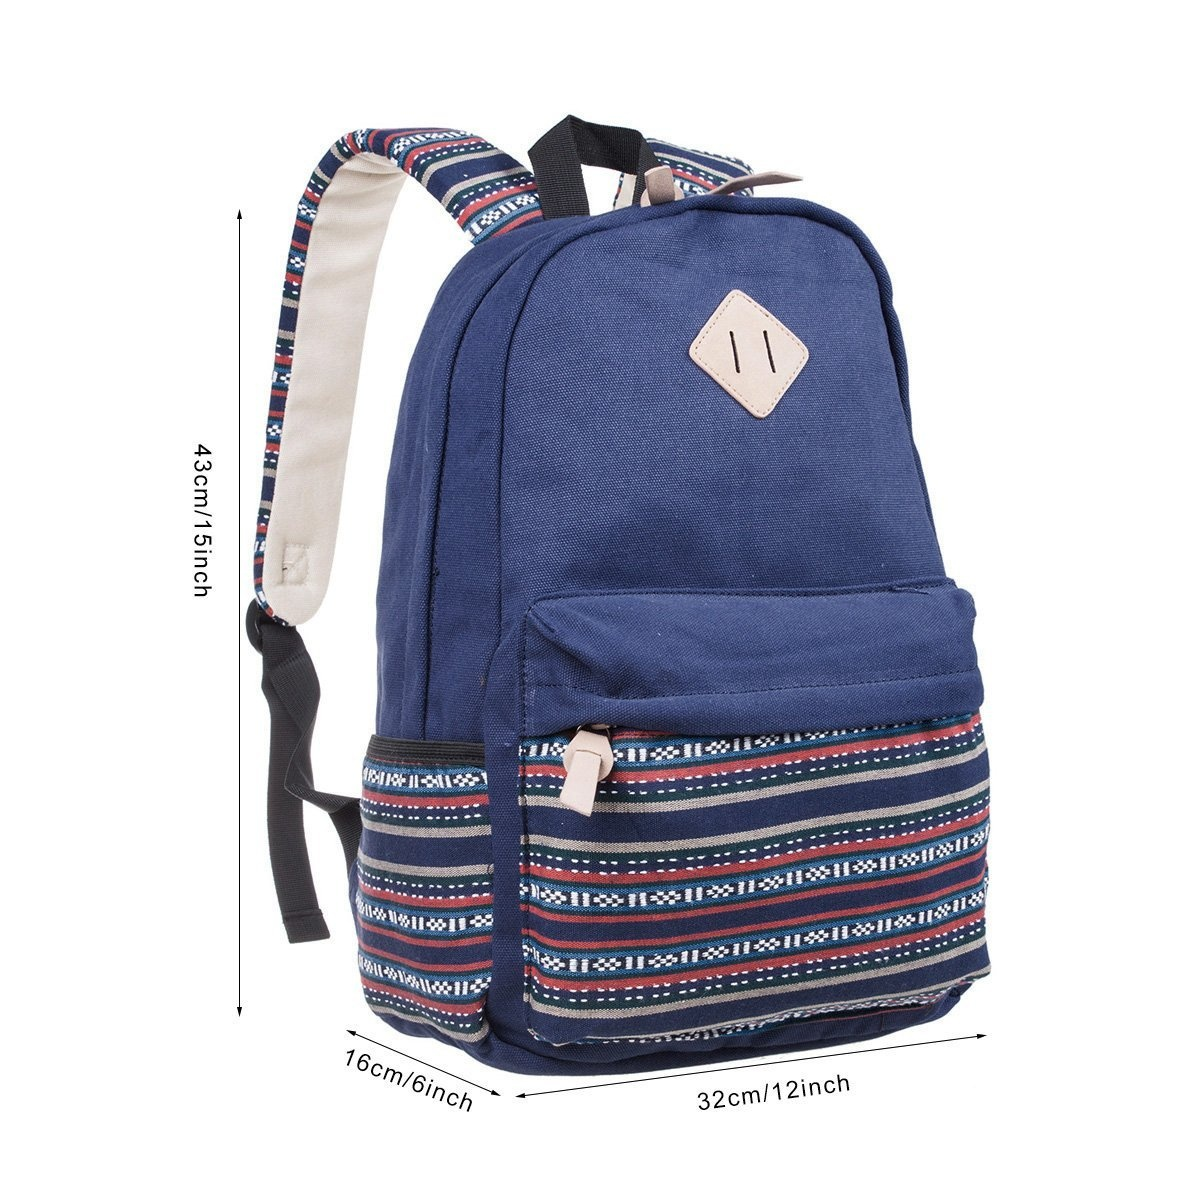 Canvas Backpacks Bags  Buy Online from Fishpond.co.nz 3742b80a8f1db